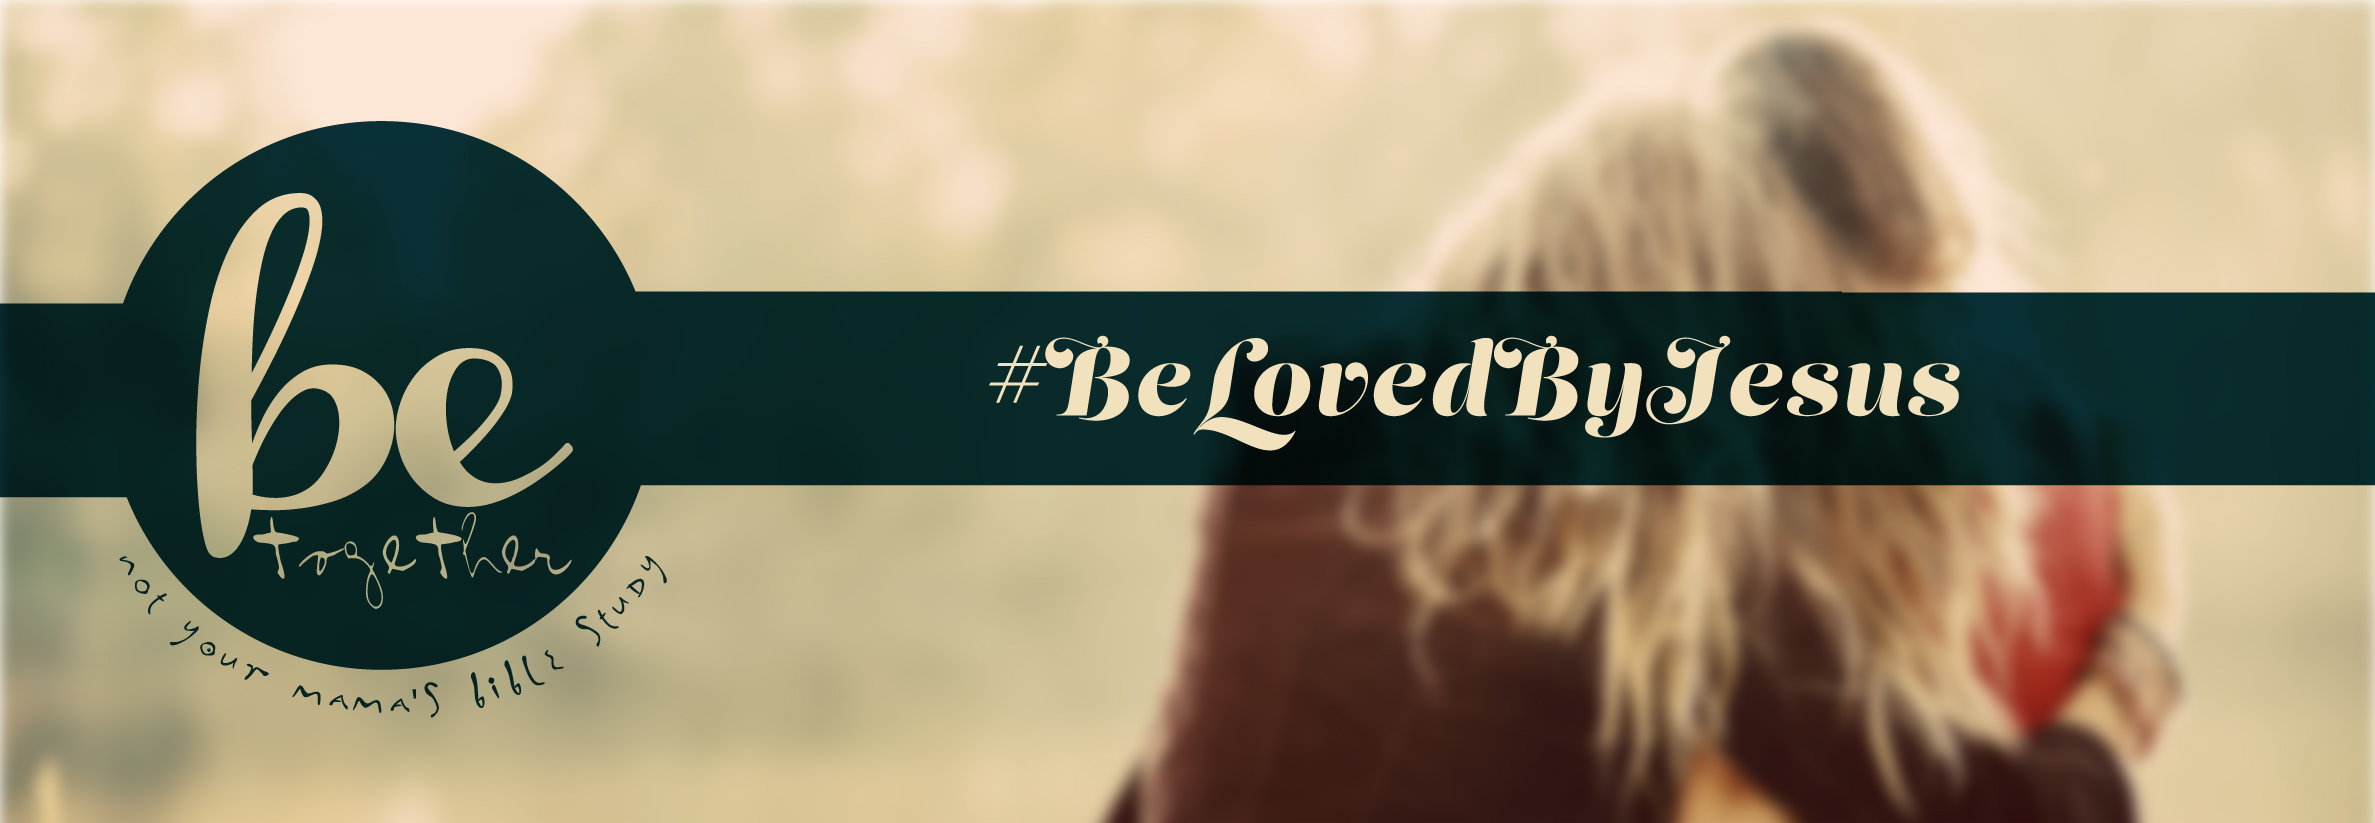 BE LOVED BY JESUS-01